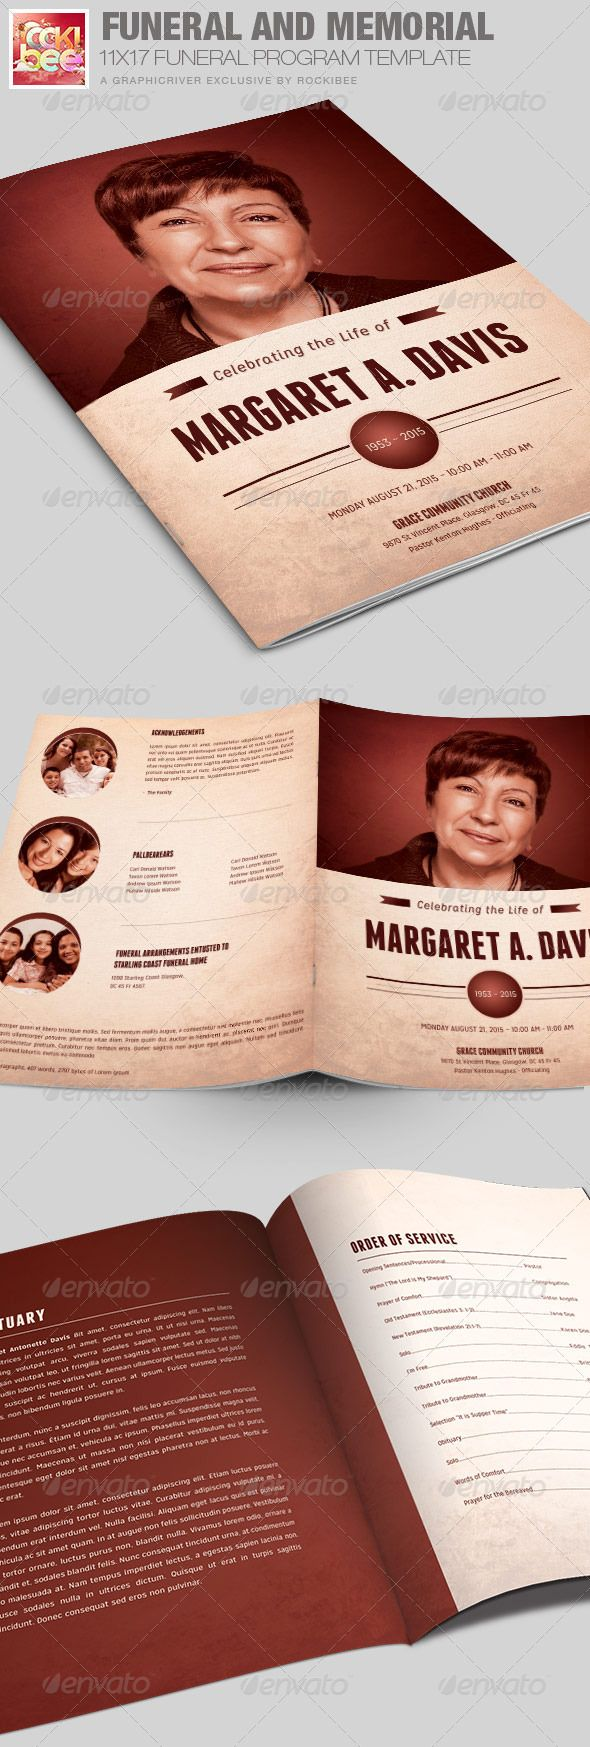 Memorial Program Templates Free Funeral And Memorial Program Template  Program Template Funeral .